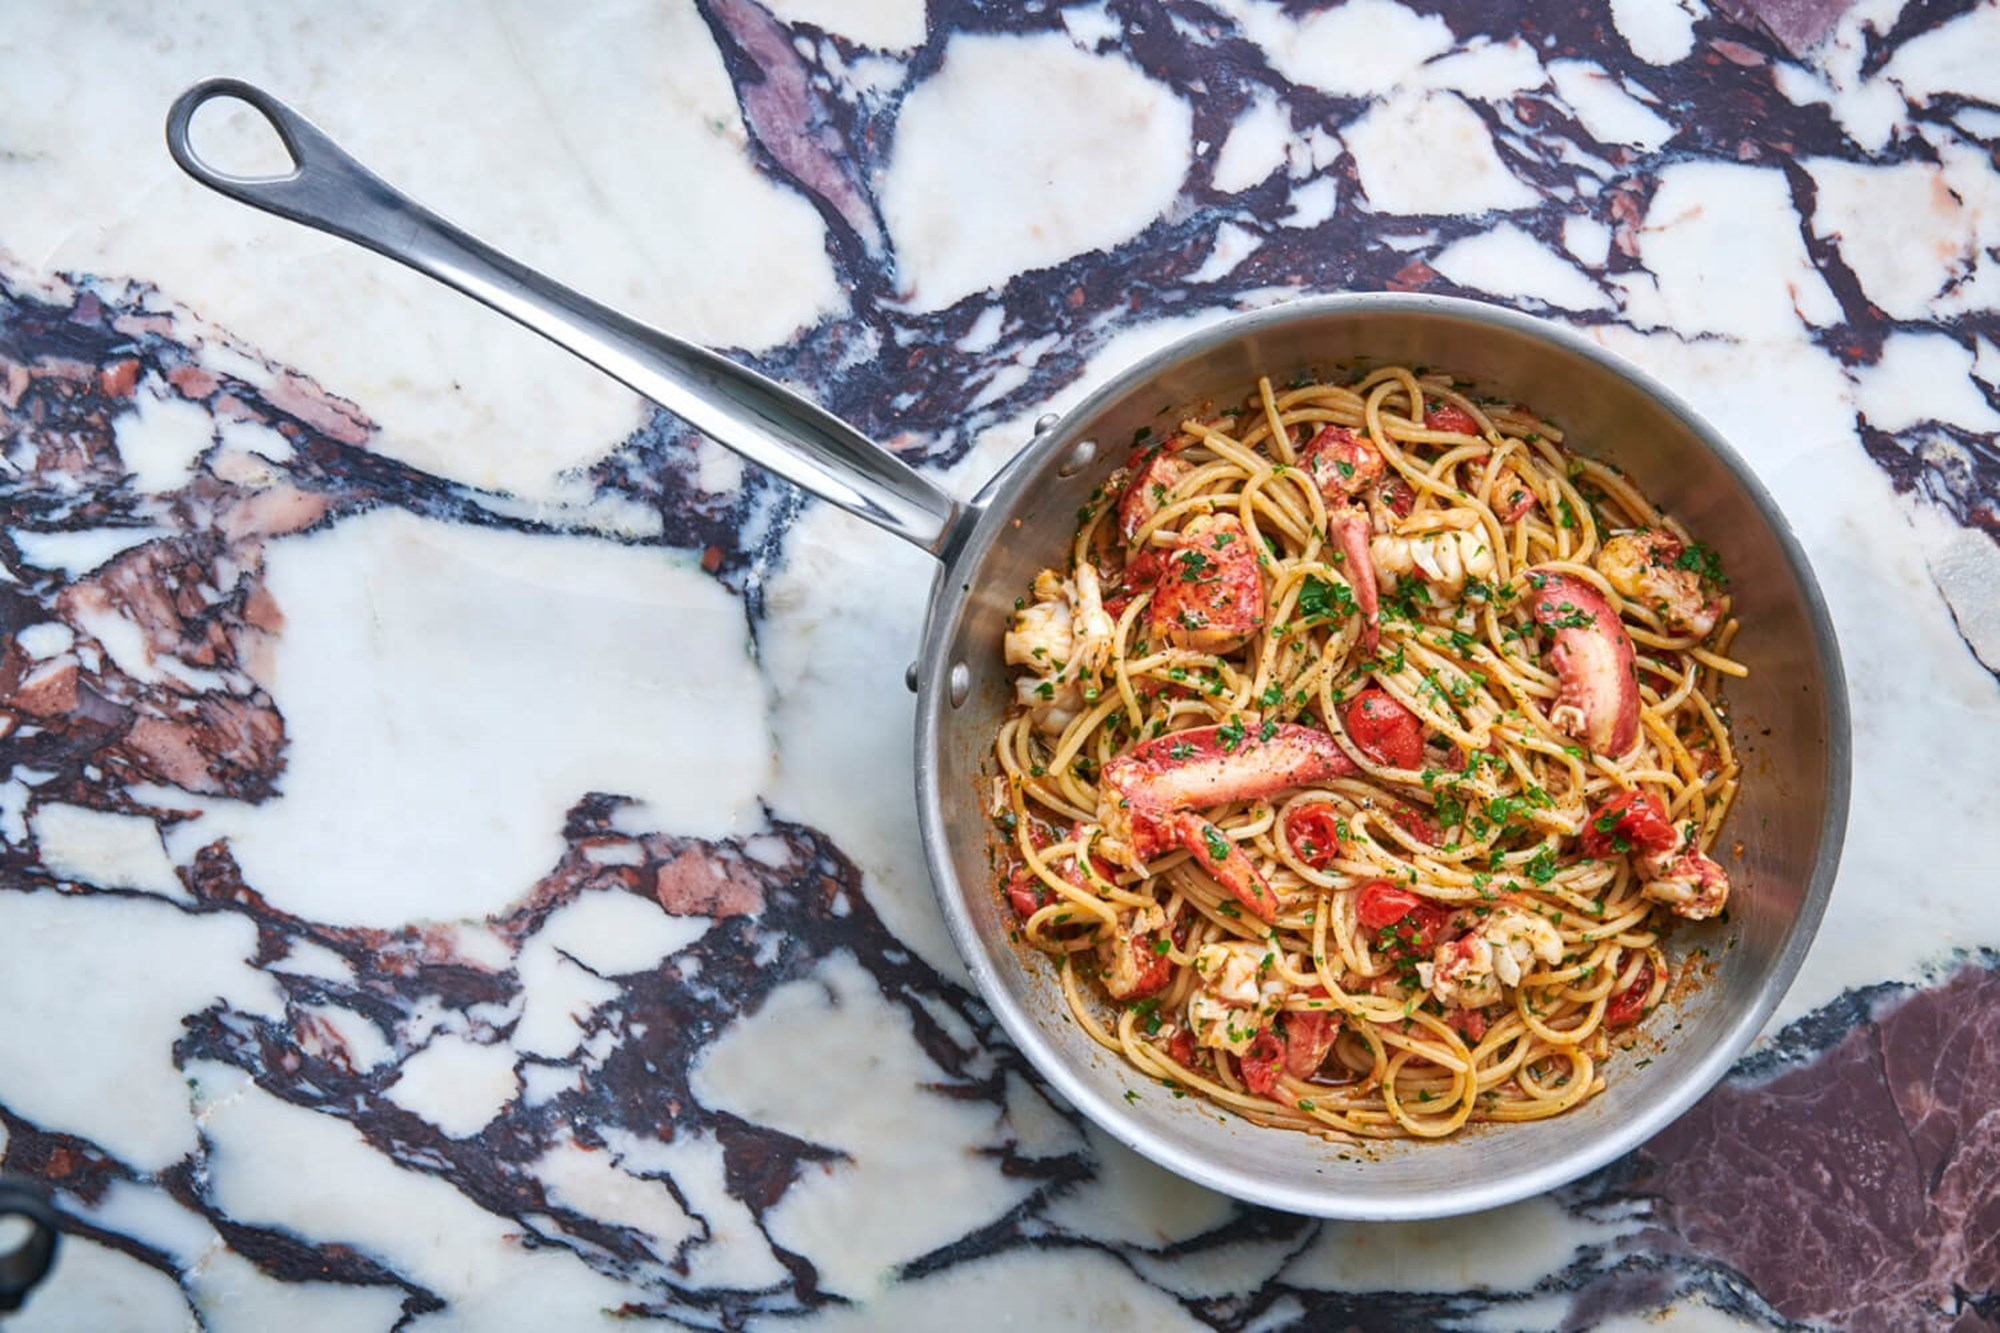 Spaghetti with lobster served at Italian restaurant Daphne's in Kensington